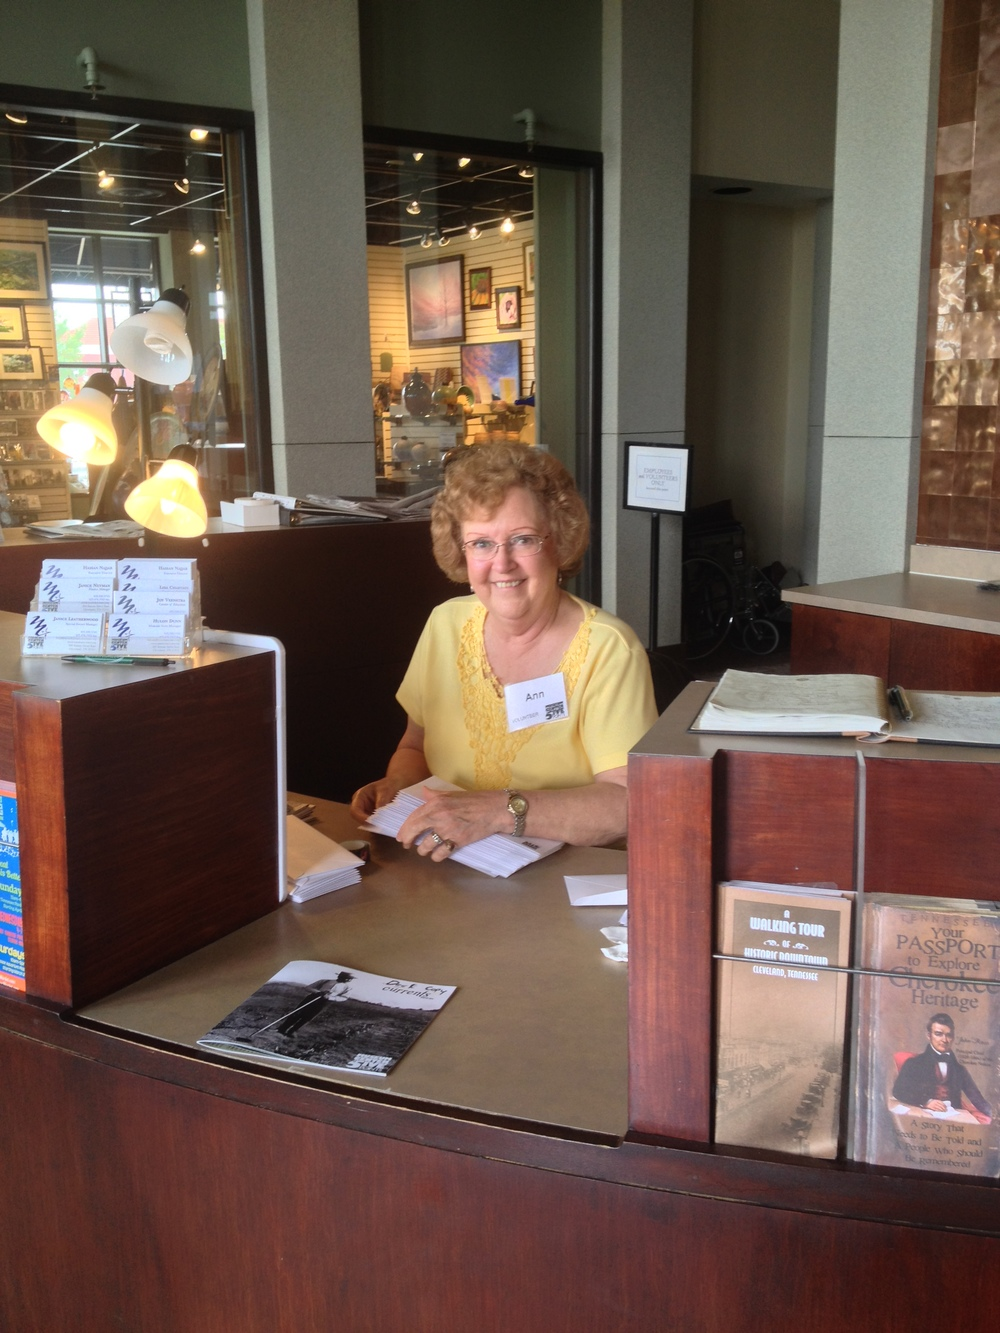 Museum Center at 5ive Points volunteer, Ann Cherry, assists with a mailing at the front desk.